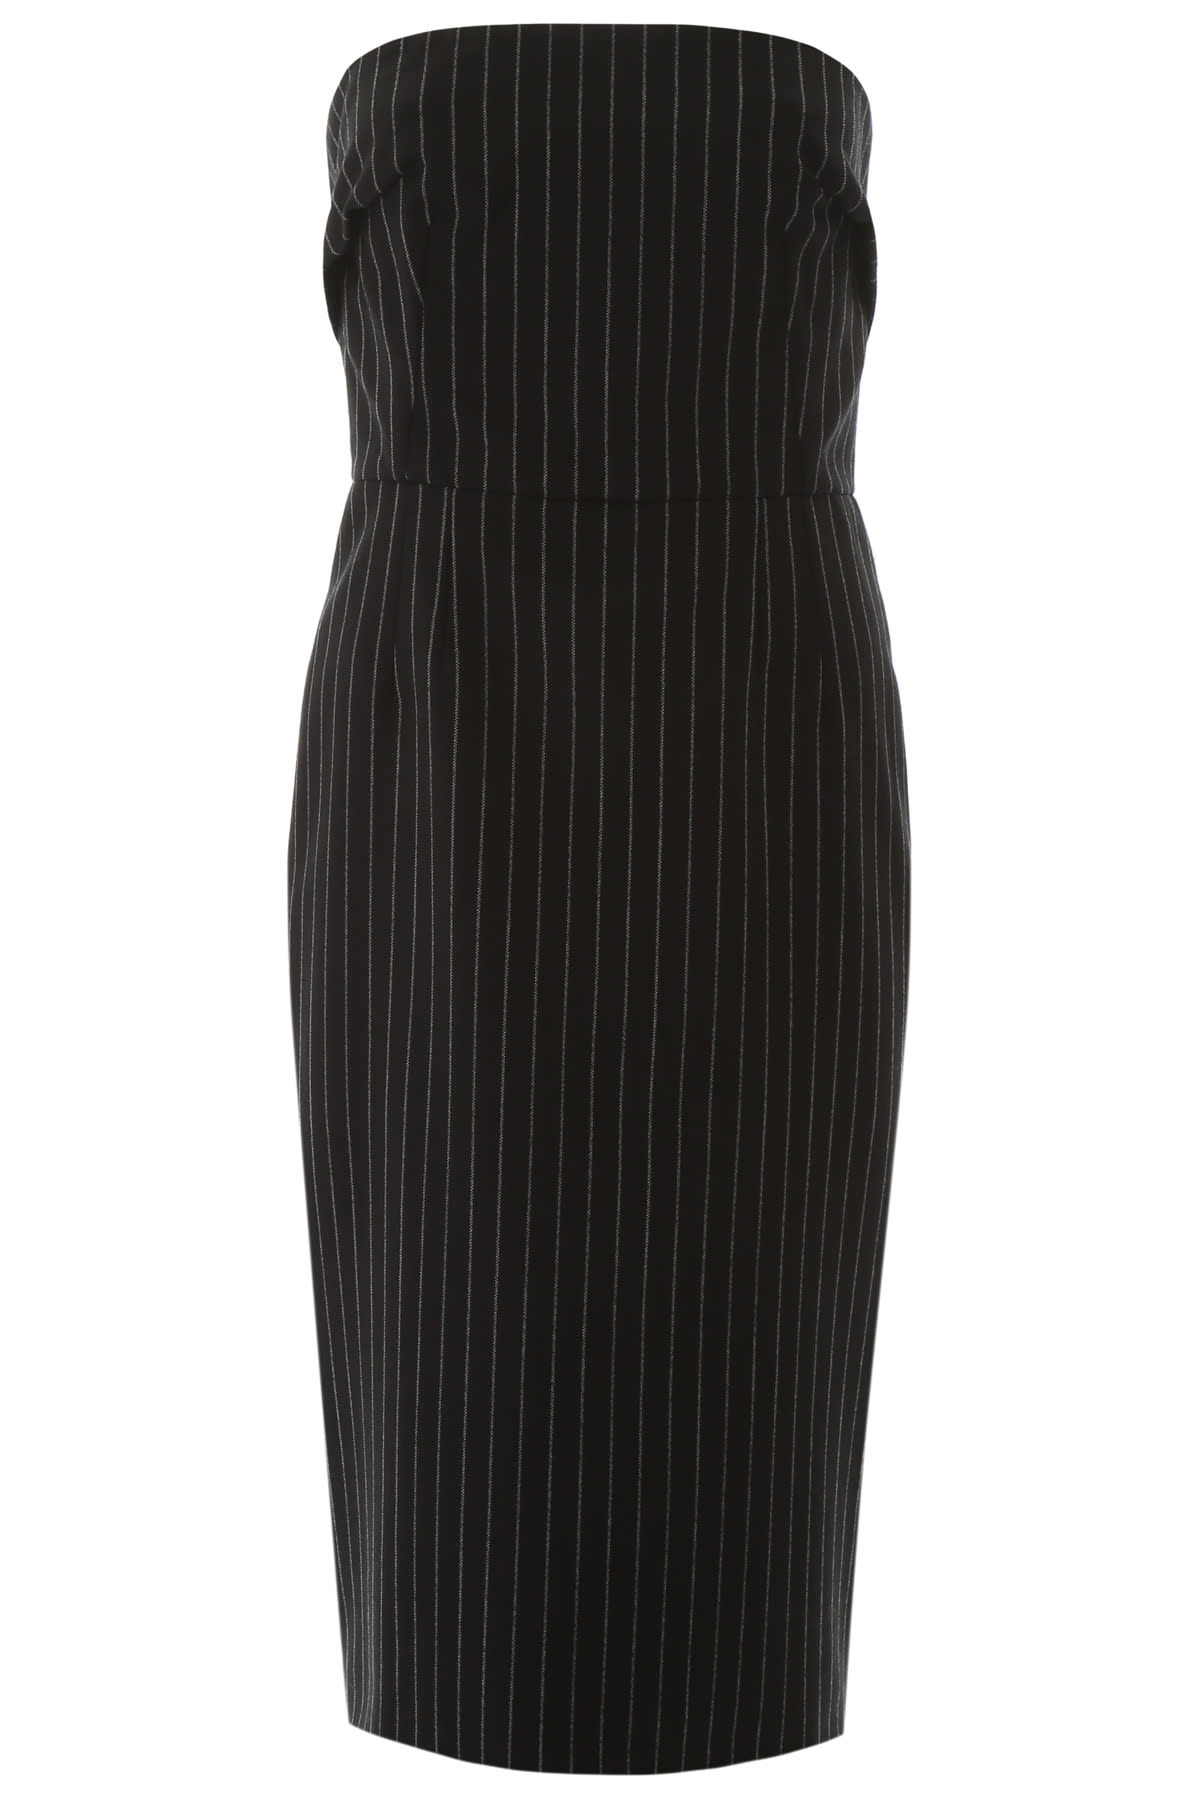 Buy Dolce & Gabbana Pinstriped Bustier Dress online, shop Dolce & Gabbana with free shipping